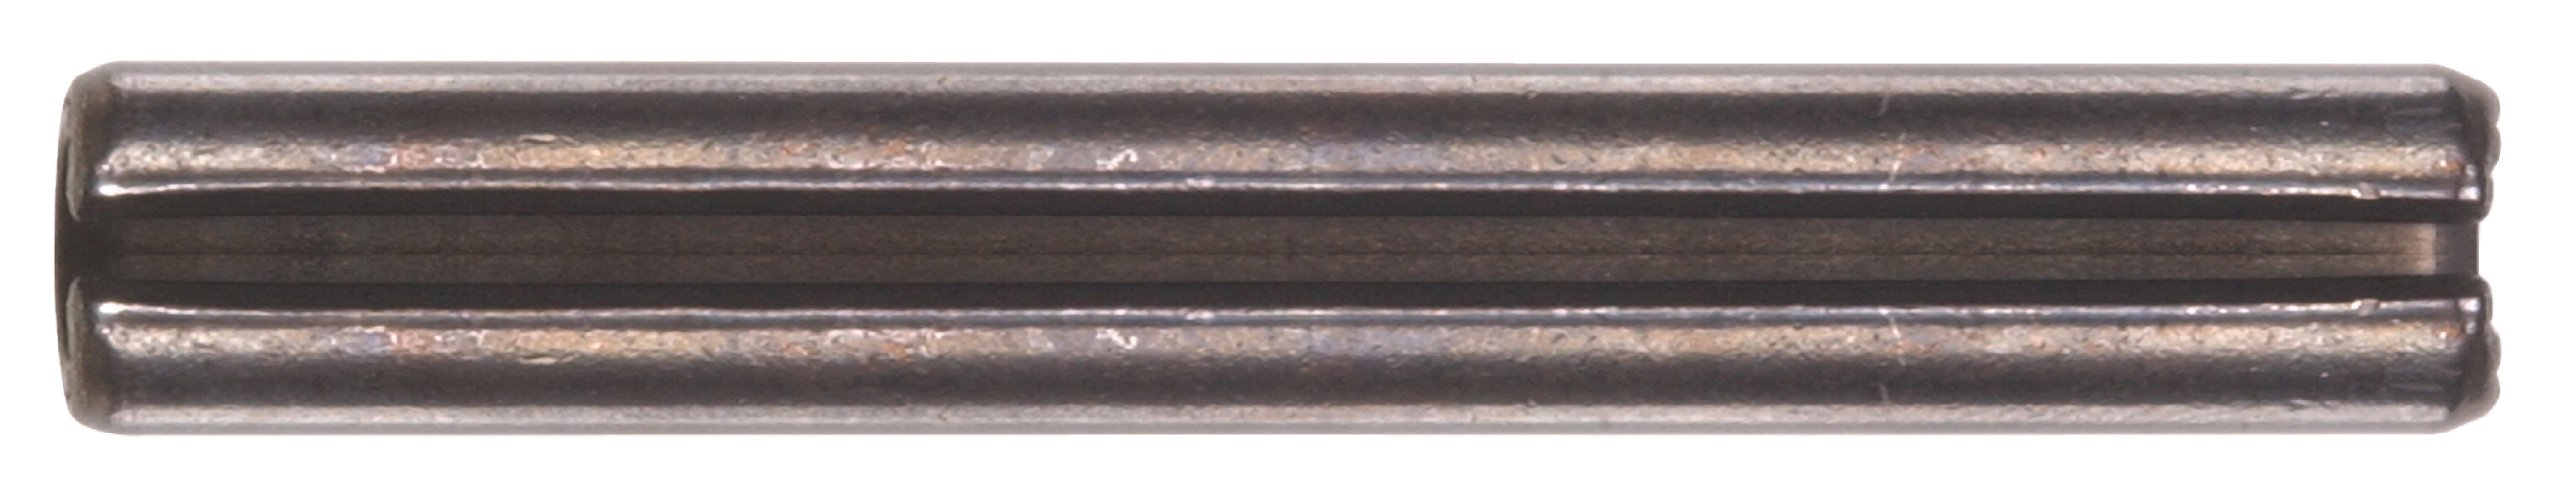 The Hillman Group The Hillman Group 922 Tension Pin 1/4 x 1 1/2 In. 12-Pack